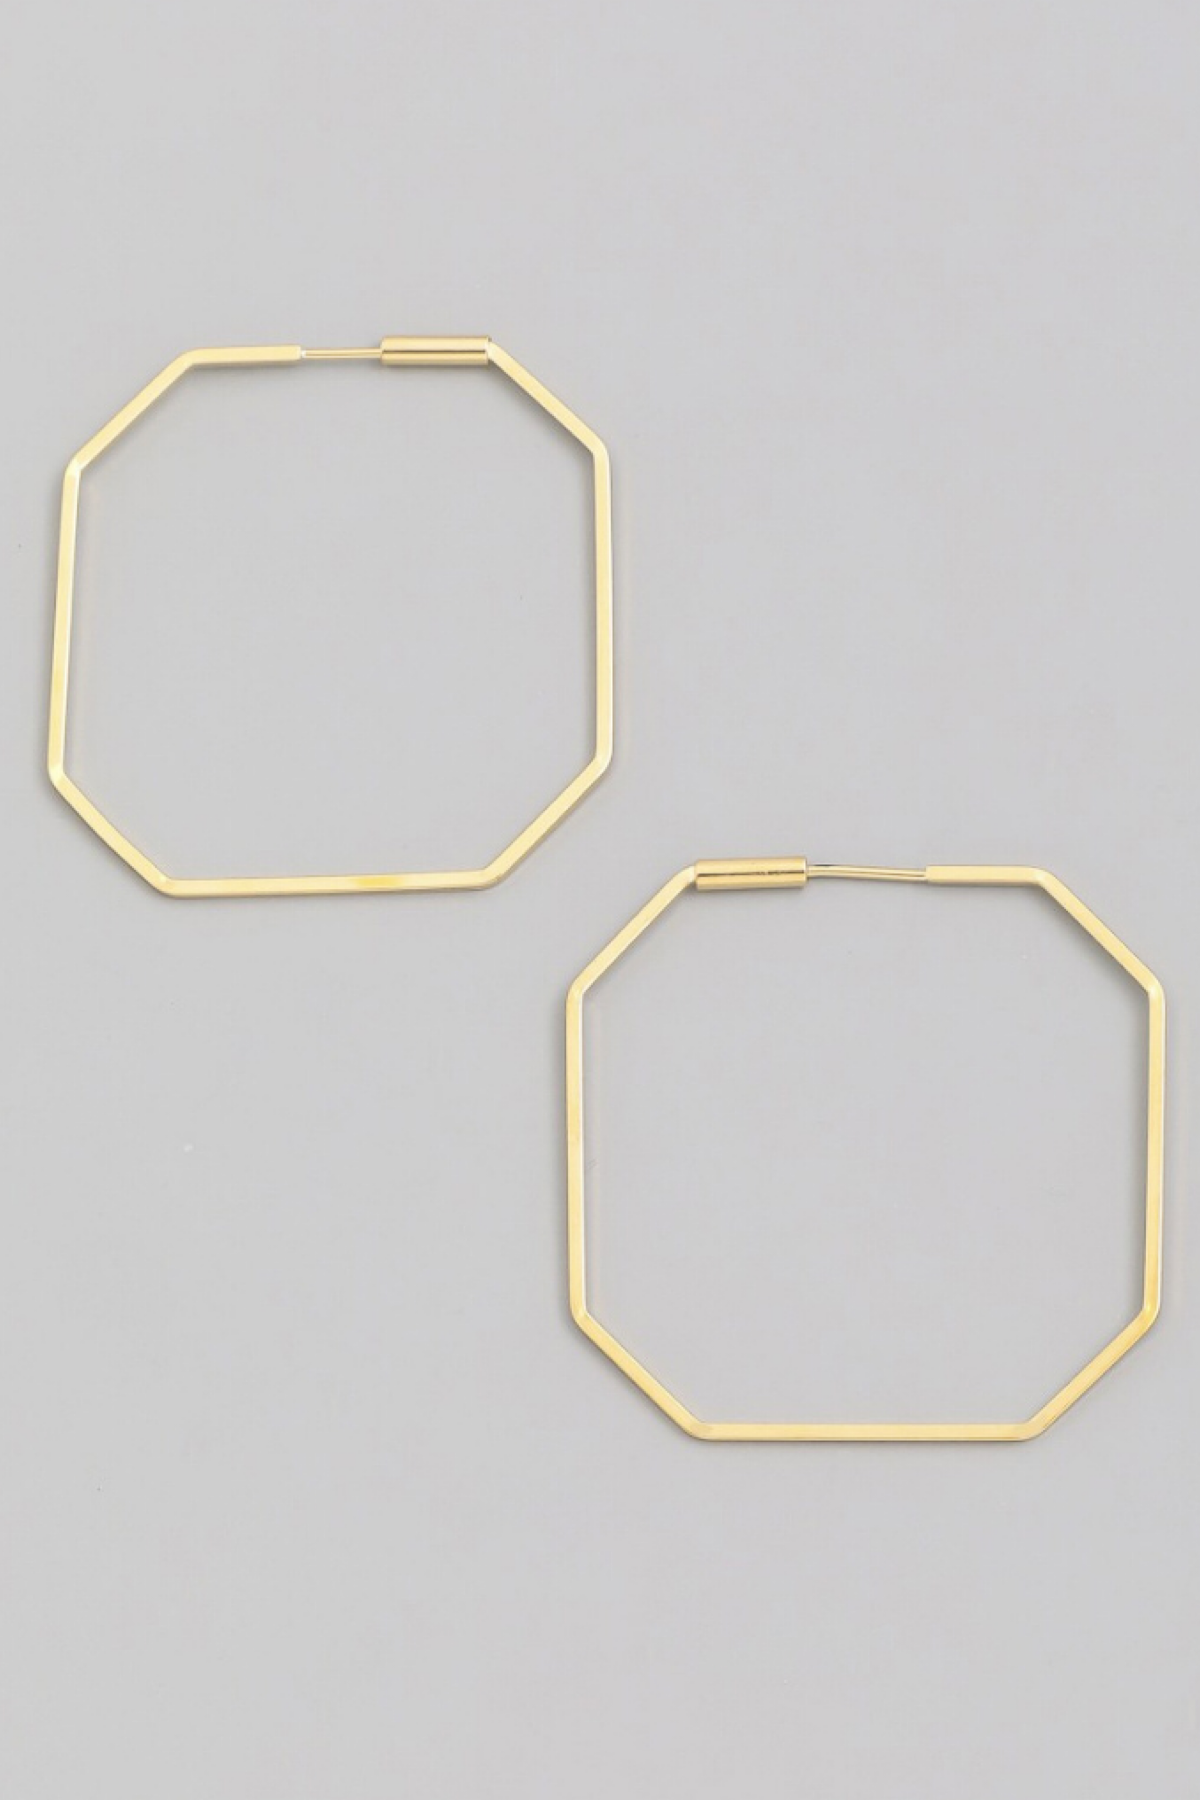 14 KARAT GOLD DIPPED GEOMETRIC HOOPS